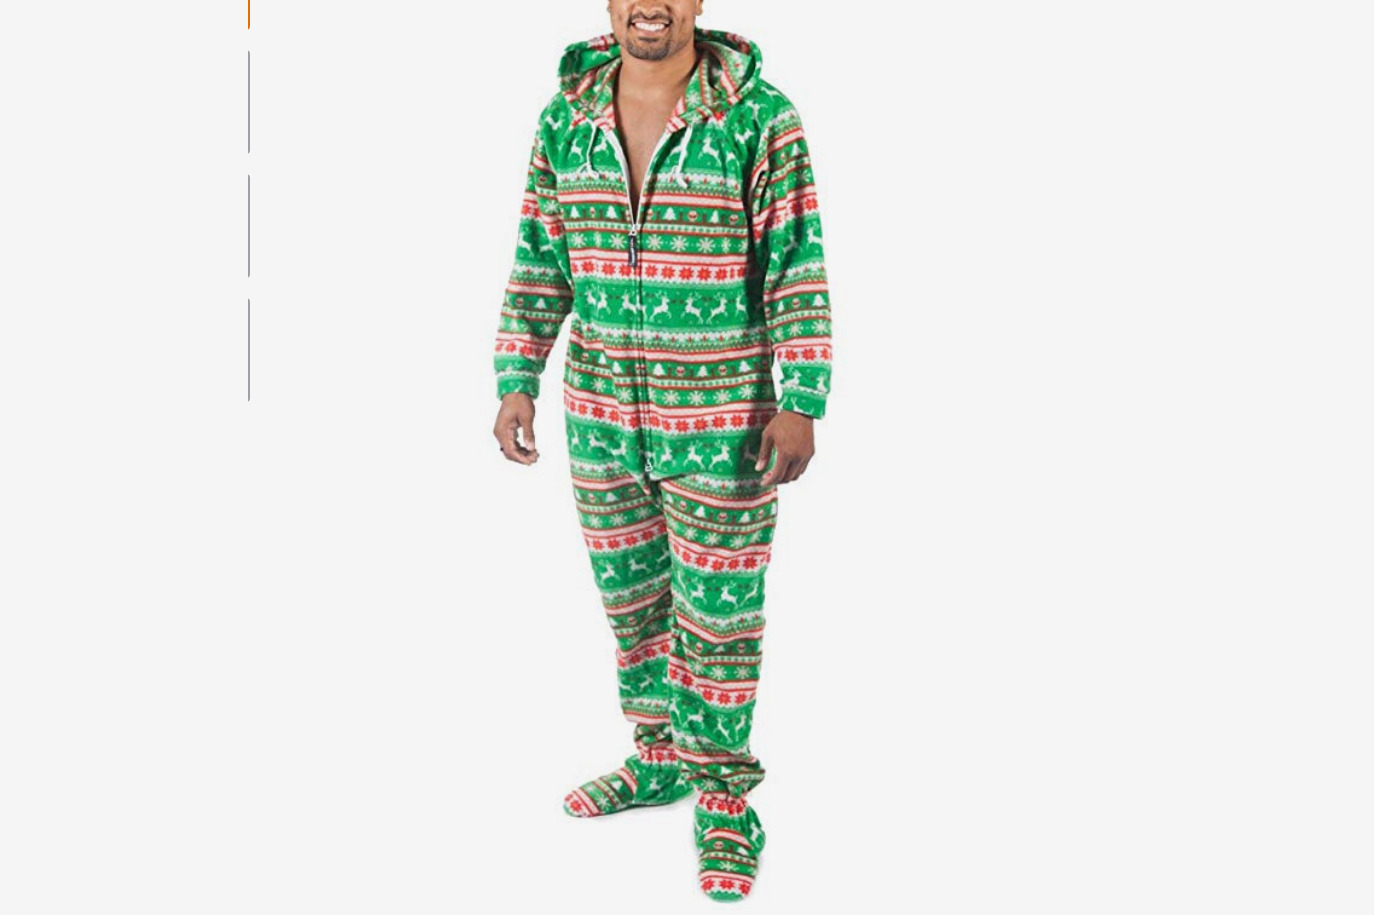 664fb4c6c8 Forever Lazy Unisex Footed Adult Onesie at Amazon